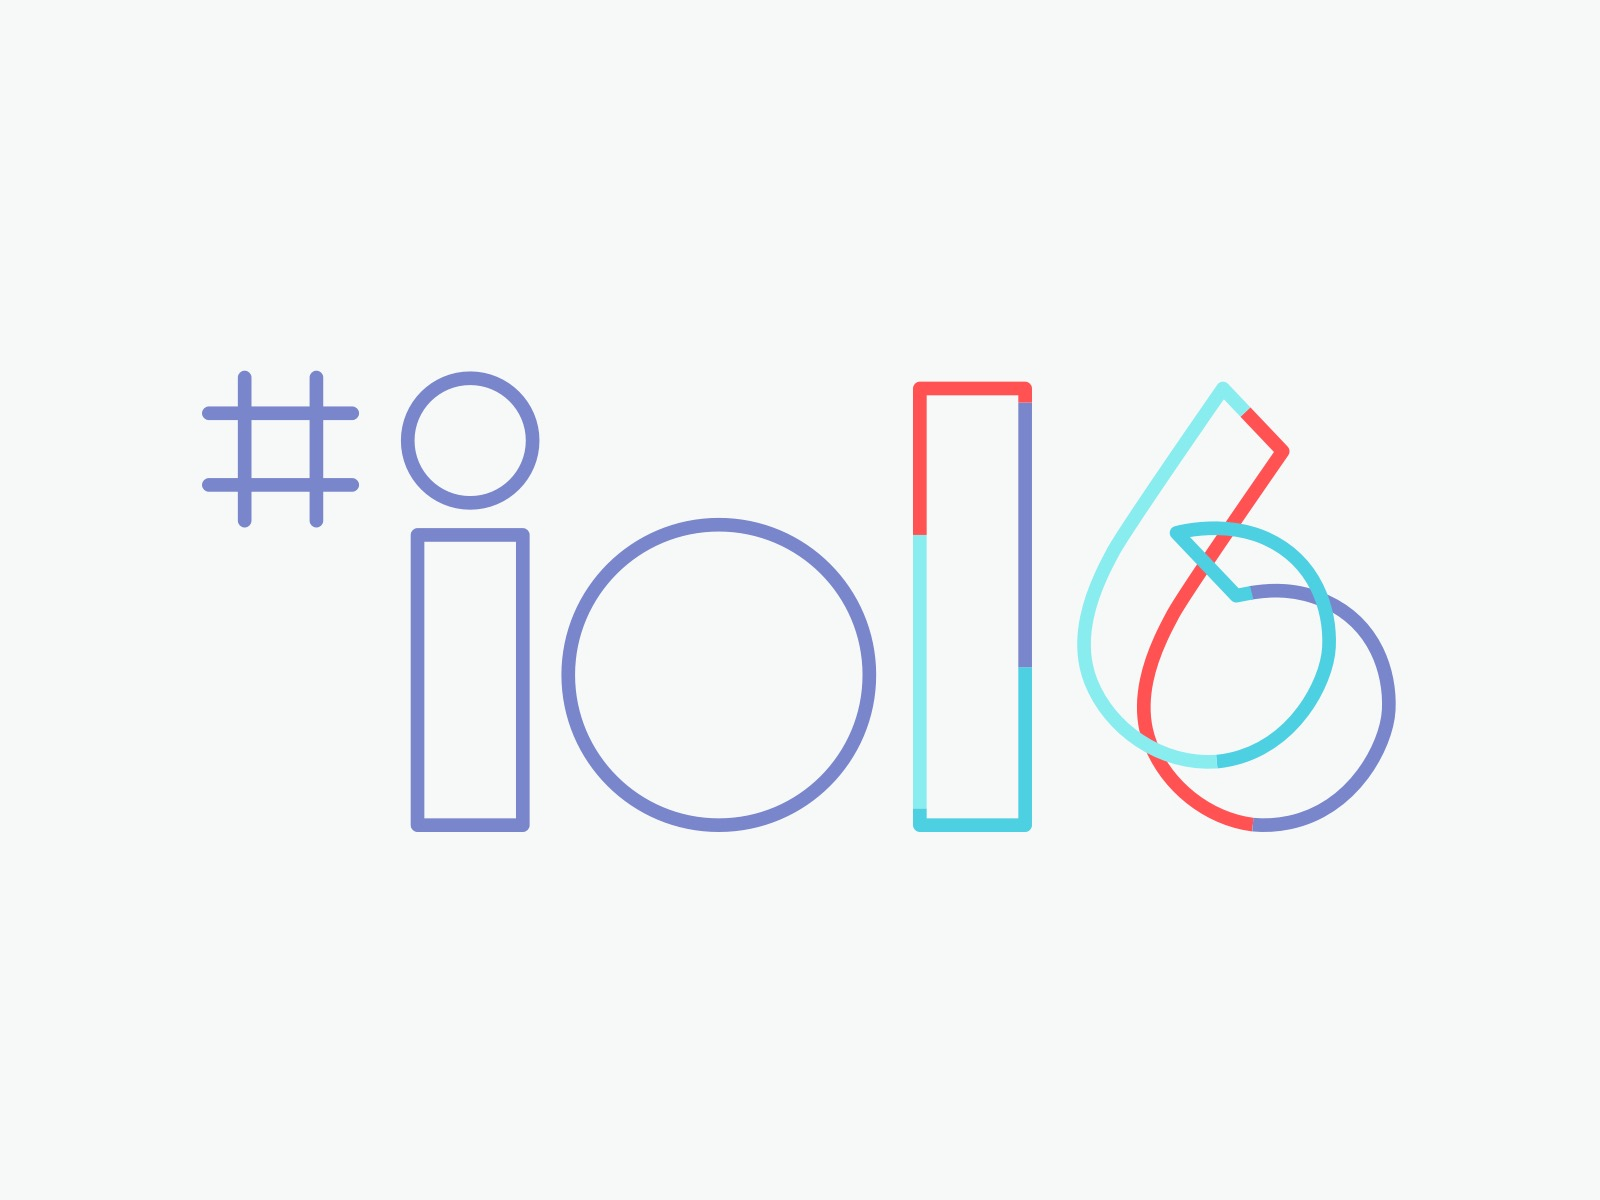 Google I/O 2016 conference on the way